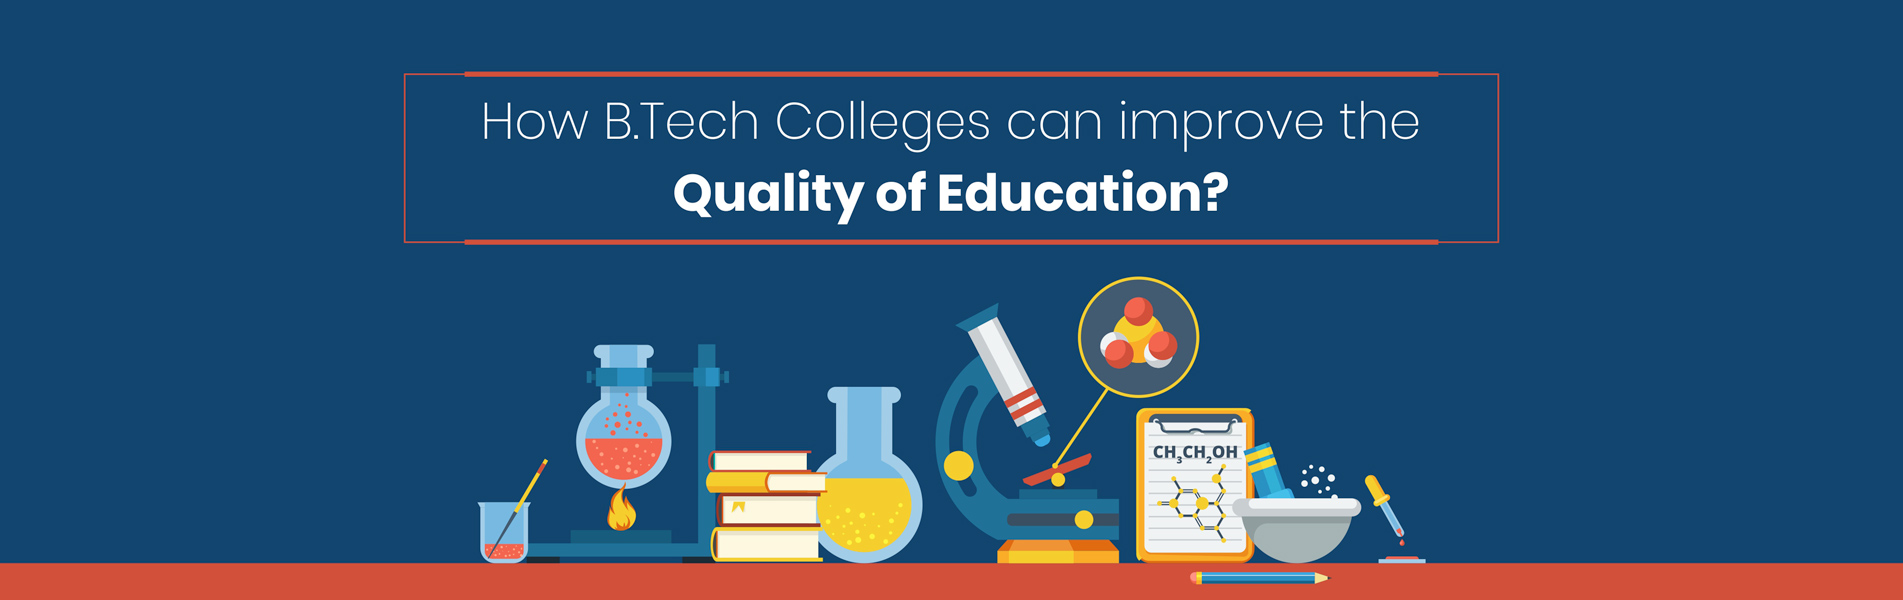 How BTech Colleges can improve the quality of education